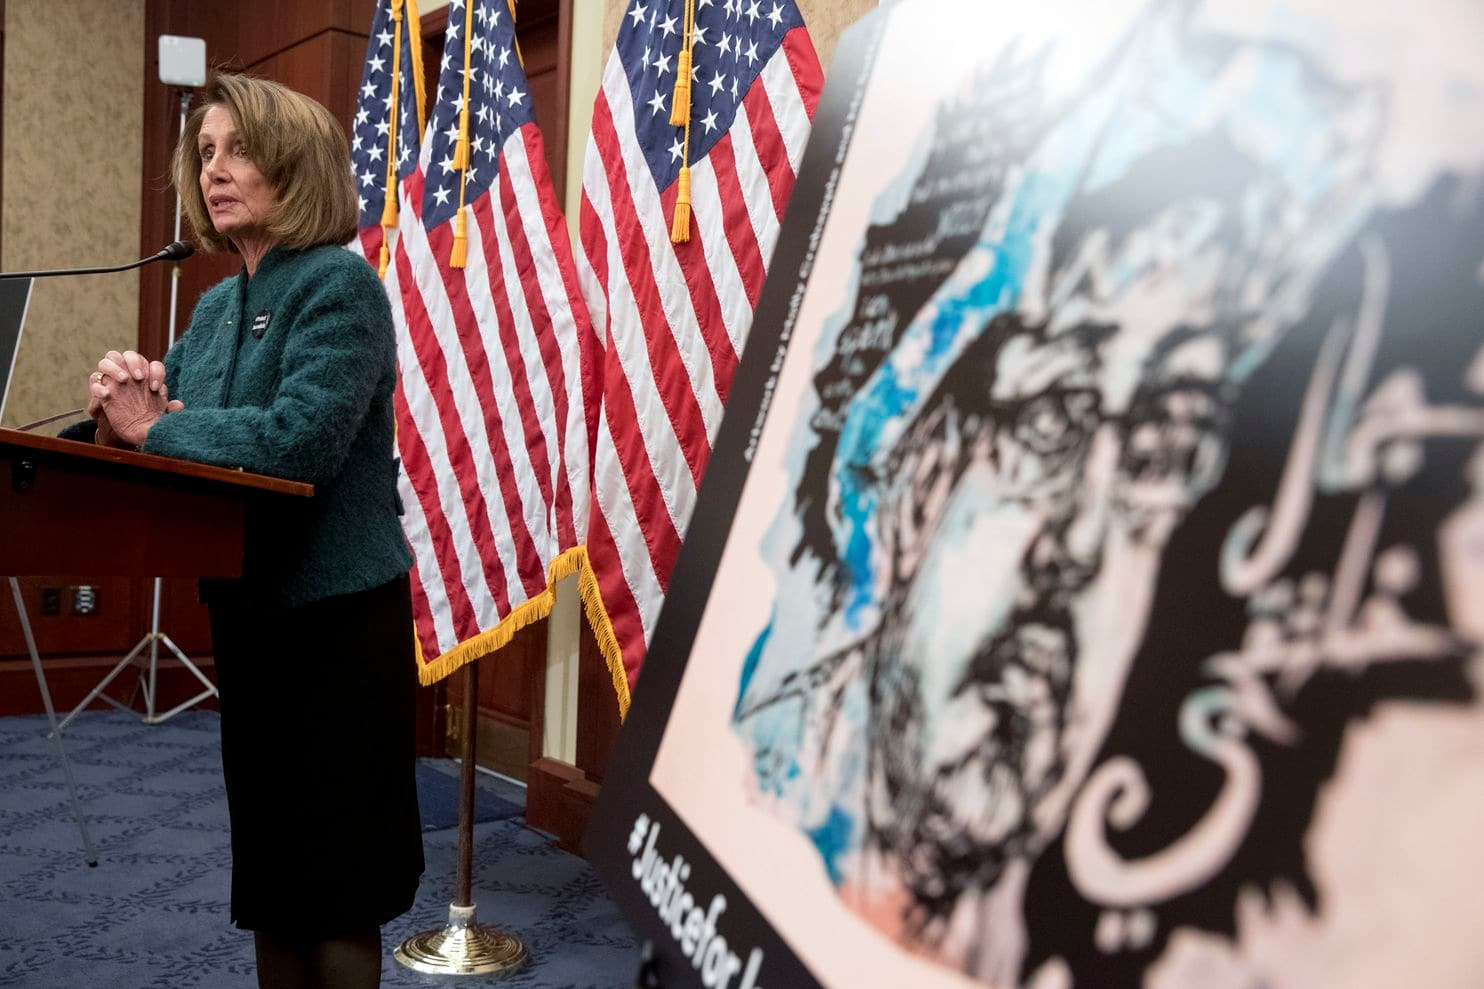 An image of slain reporter Jamal Khashoggi is displayed as House Speaker Nancy Pelosi (D-Calif.) speaks at a Capitol Hill event marking 100 days since the journalist's death, on Jan. 10, 2019.  [Photo: Andrew Harnik/AP]